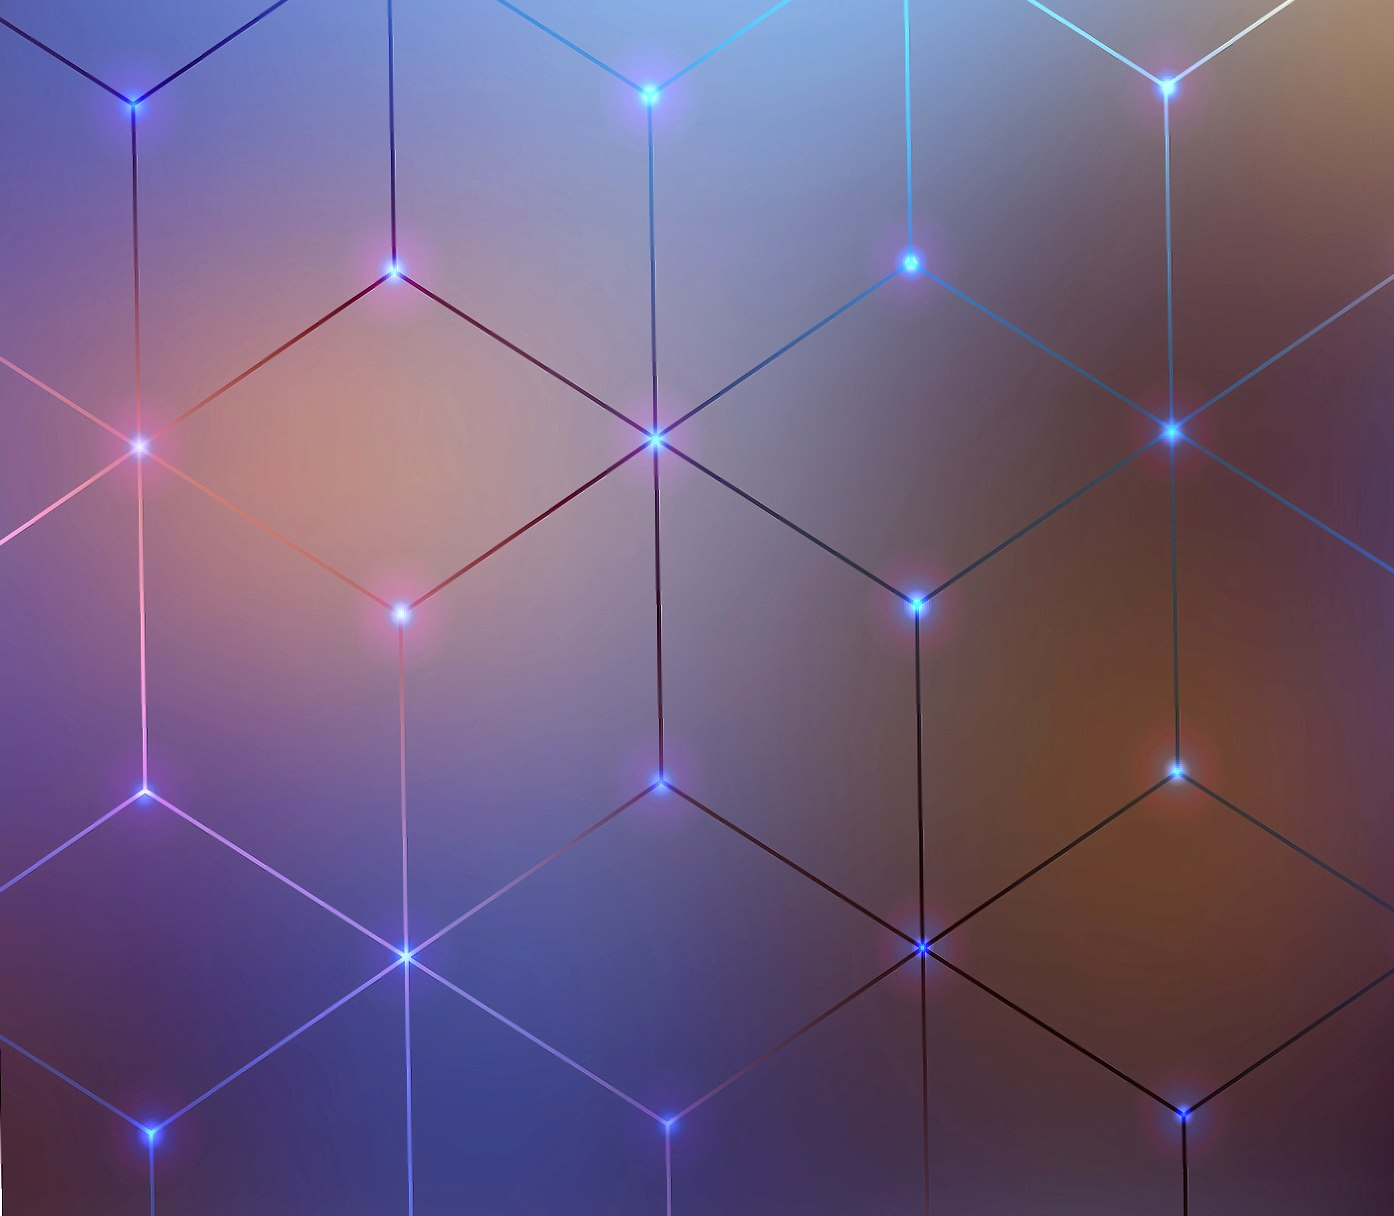 Abstract geometric wallpapers HD quality